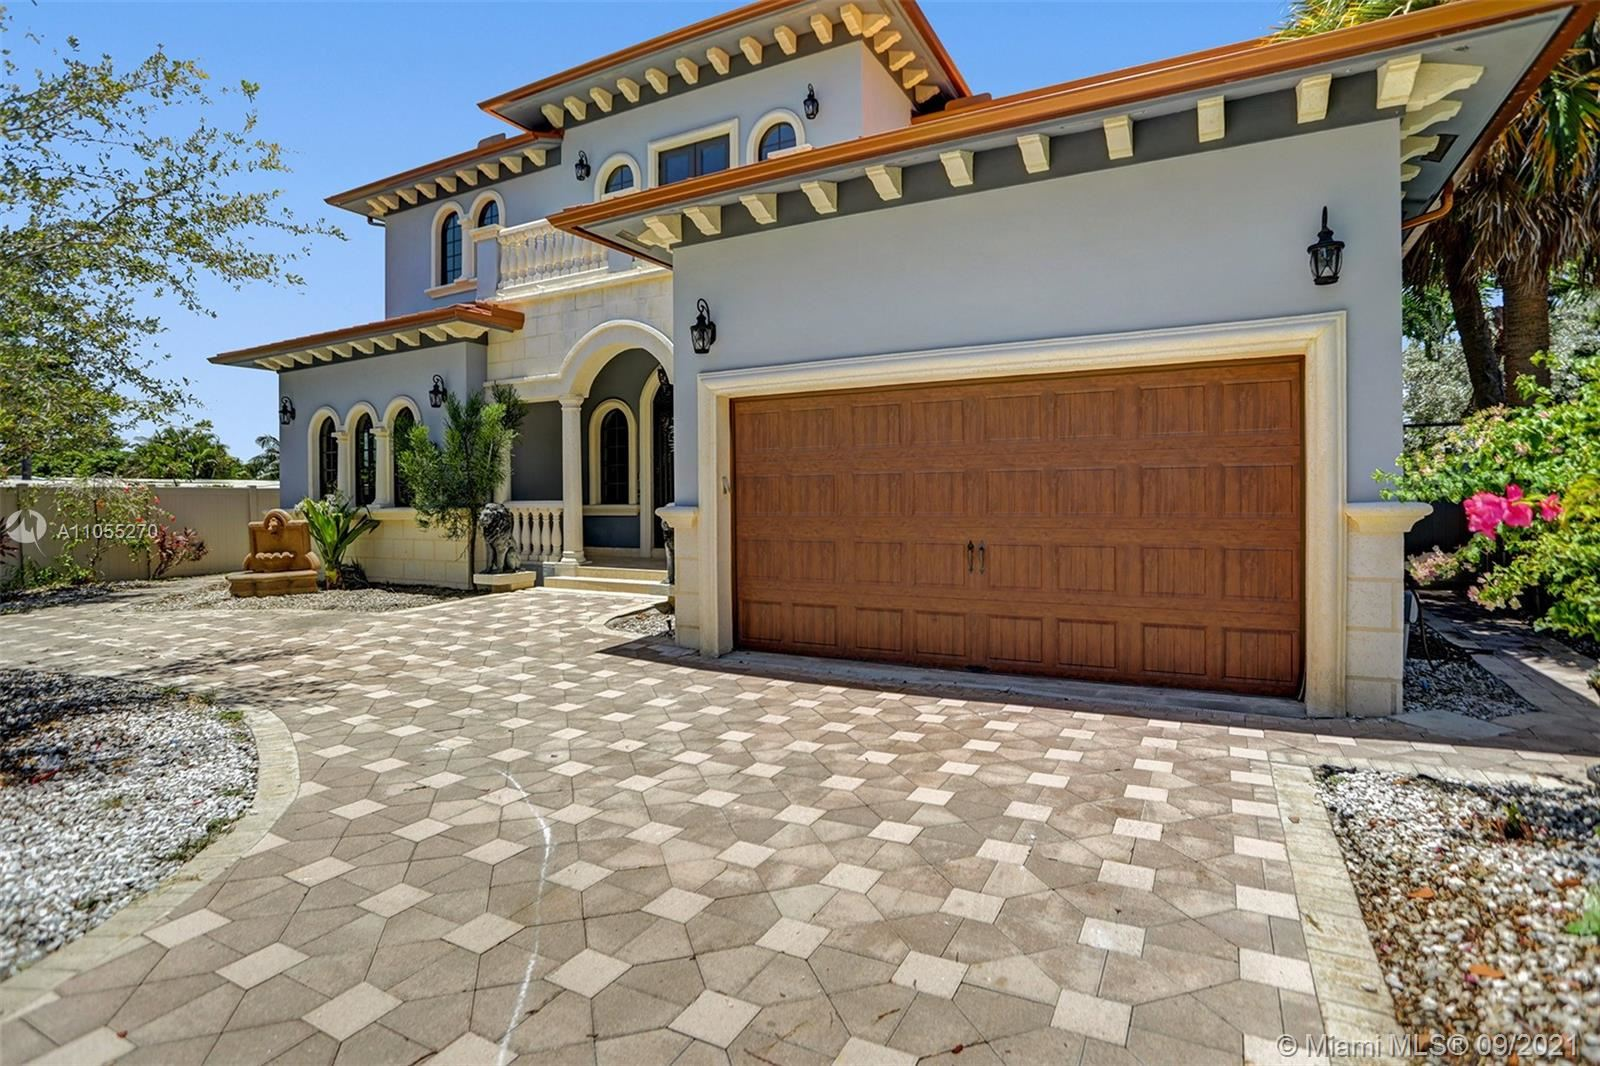 Photo of 1 Sunset Ln, Lauderdale By The Sea, FL 33062 (MLS # A11055270)